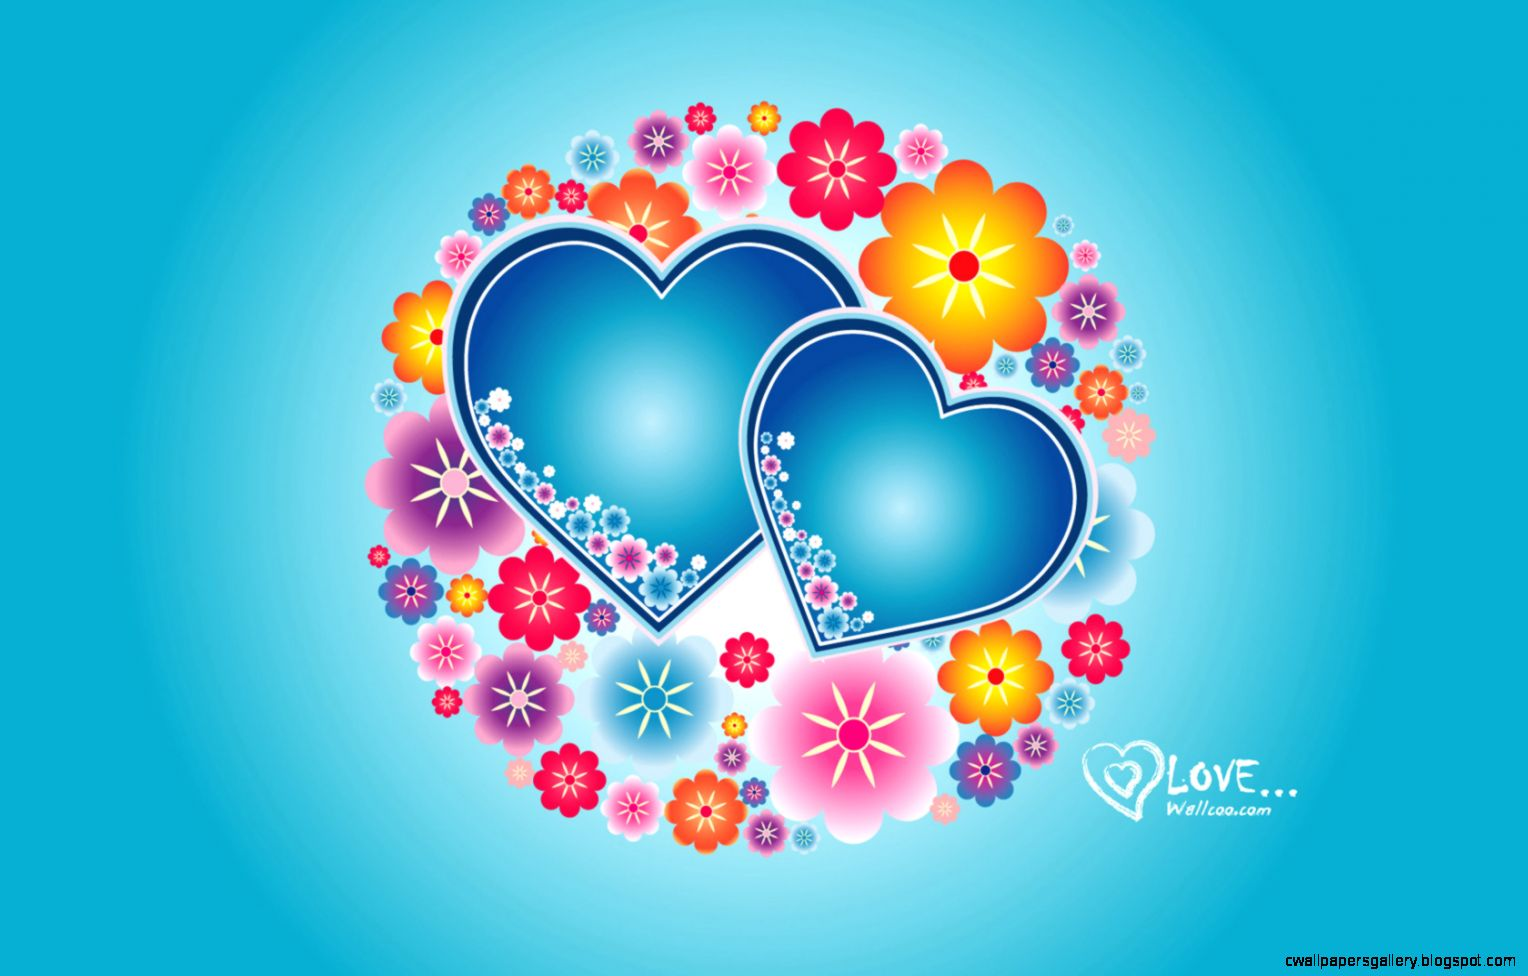 Colorful Hearts Wallpapers   Wallpaper Zone